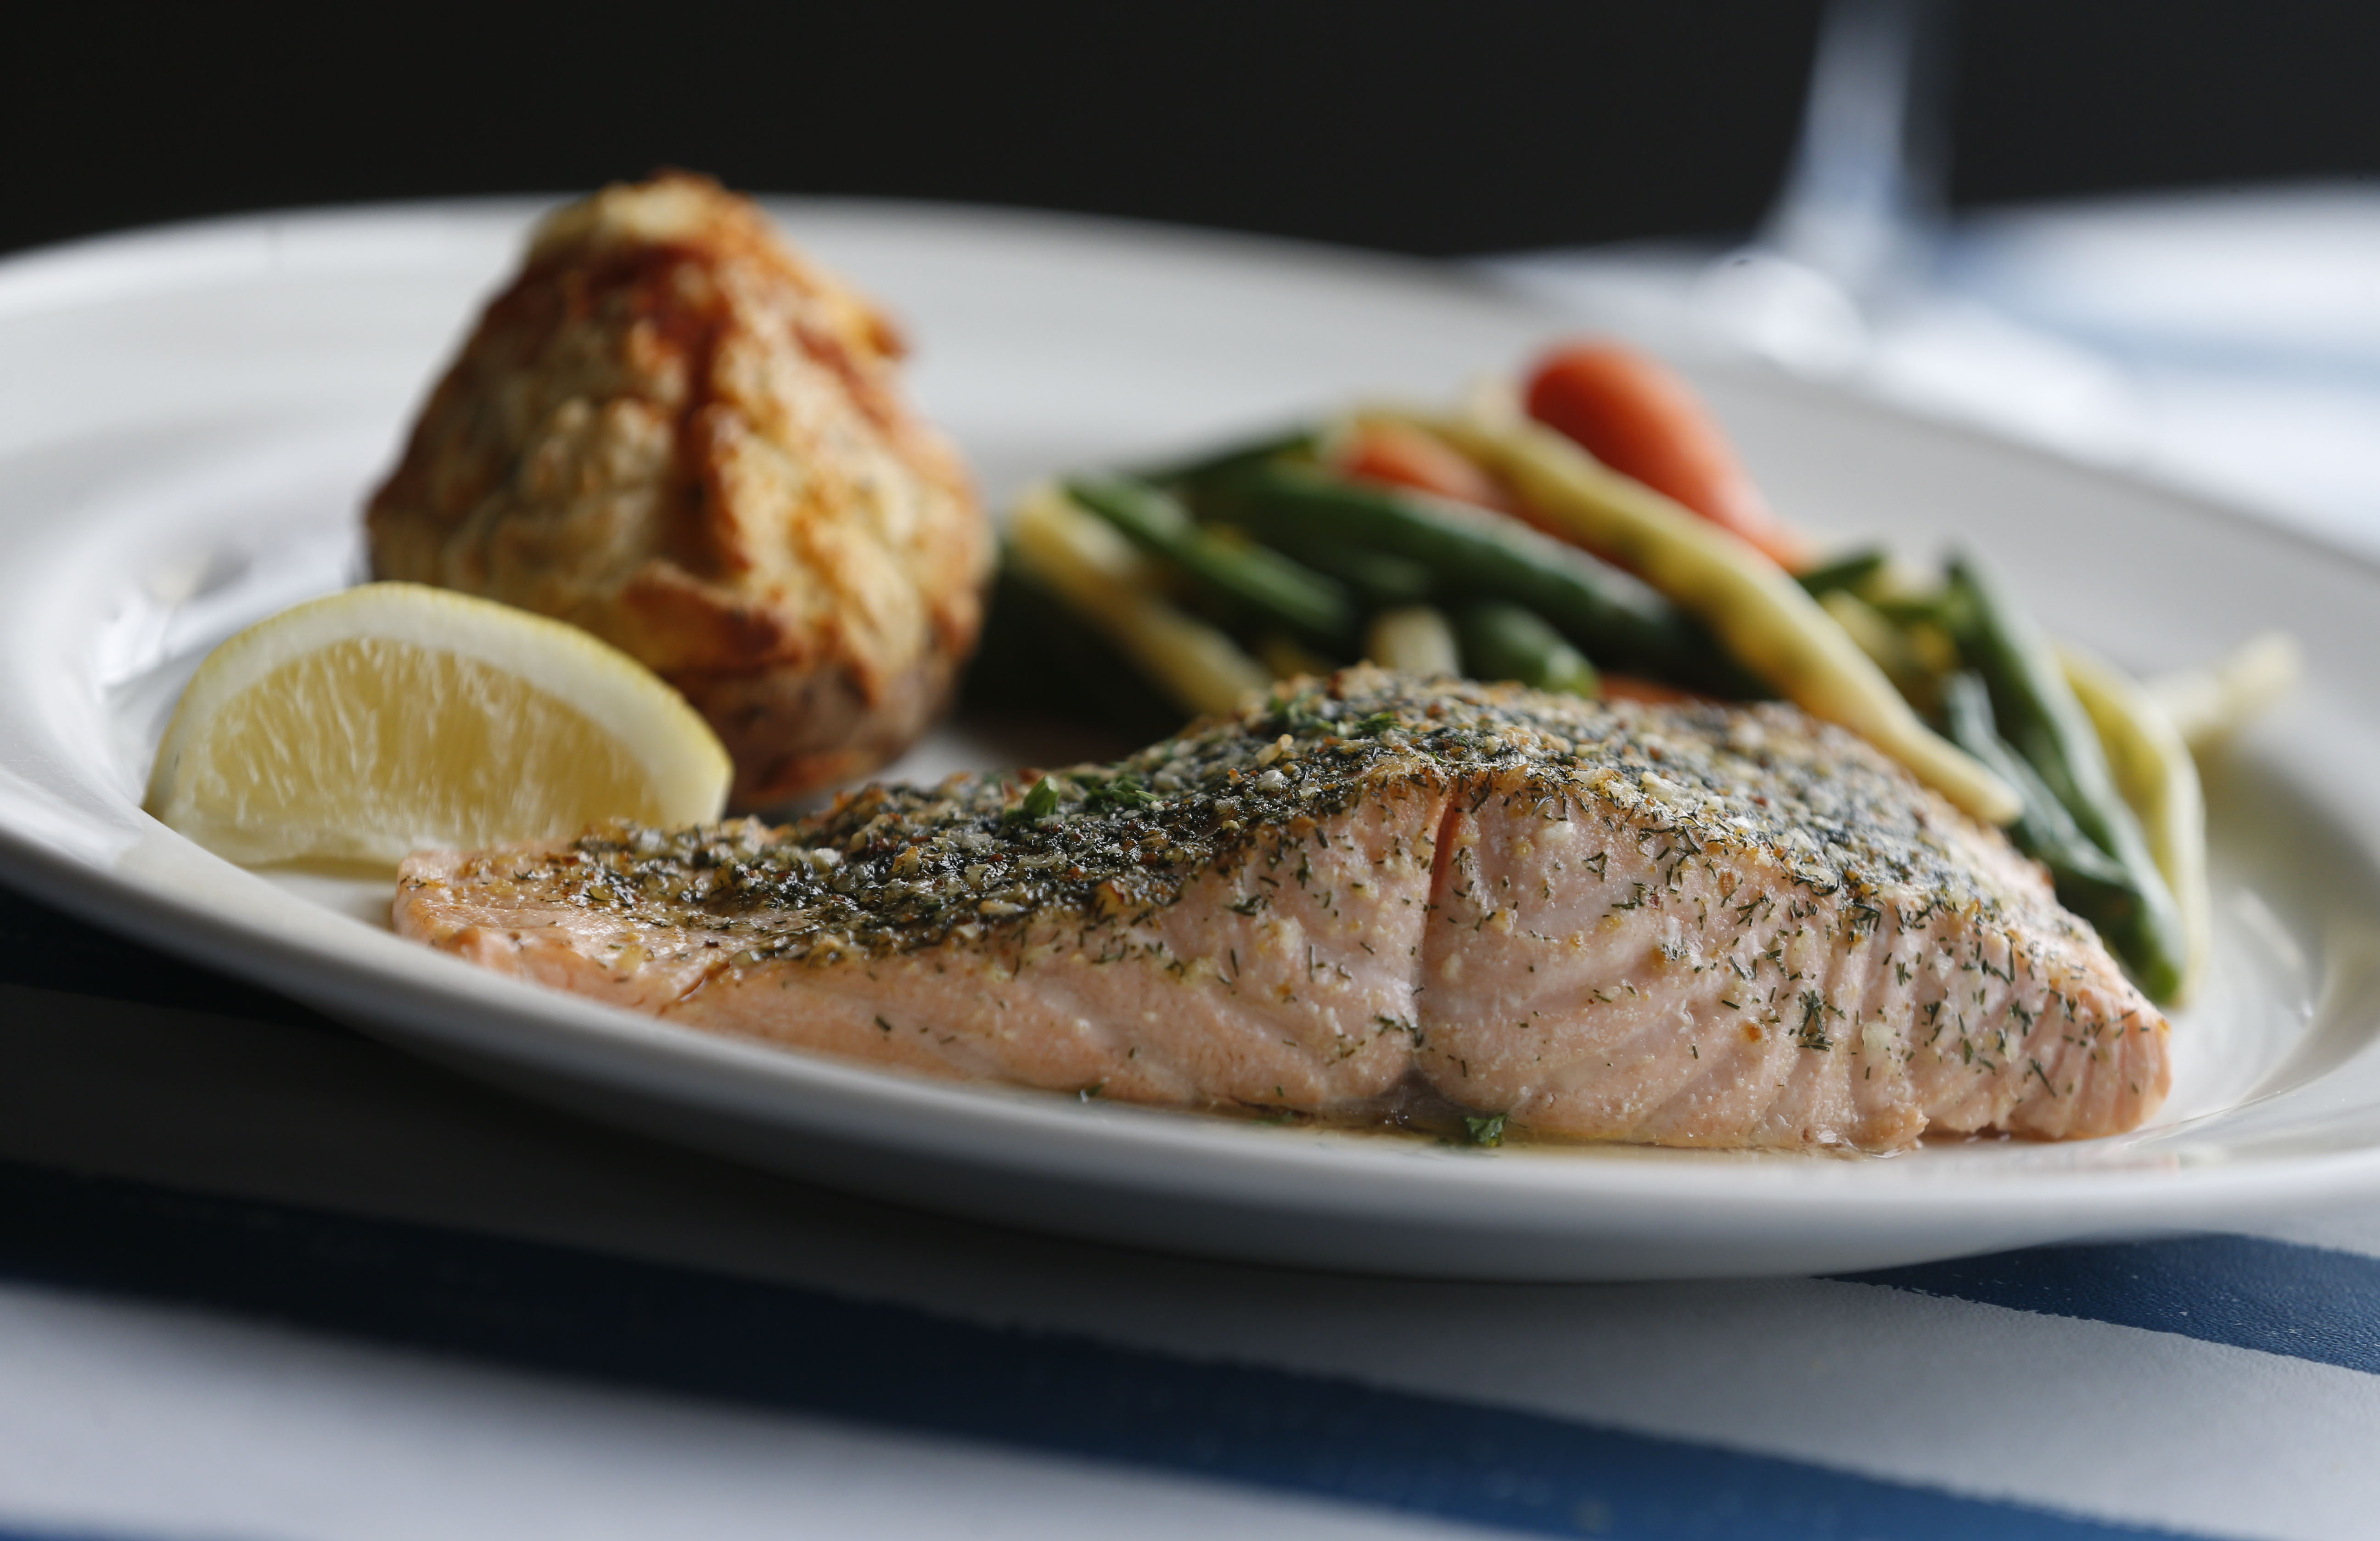 At Hayes Seafood House,  the Atlantic salmon is topped with a dill seasoning and served with a twice-baked potato or other potato and a vegetable.   (Sharon Cantillon/Buffalo News)